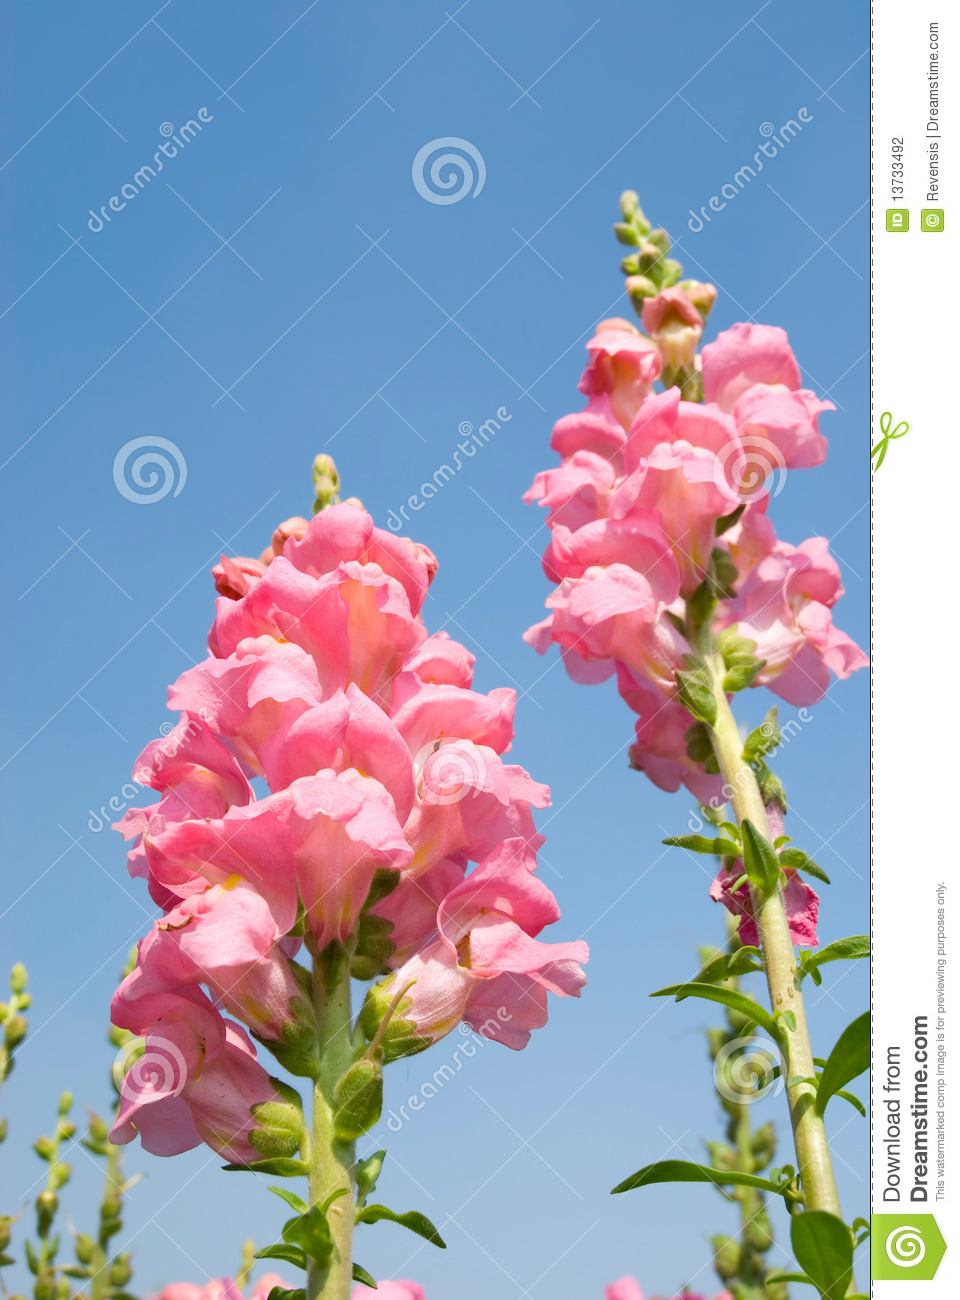 Yellow Snapdragon Flower Under Blue Sky Stock Photo Image Of